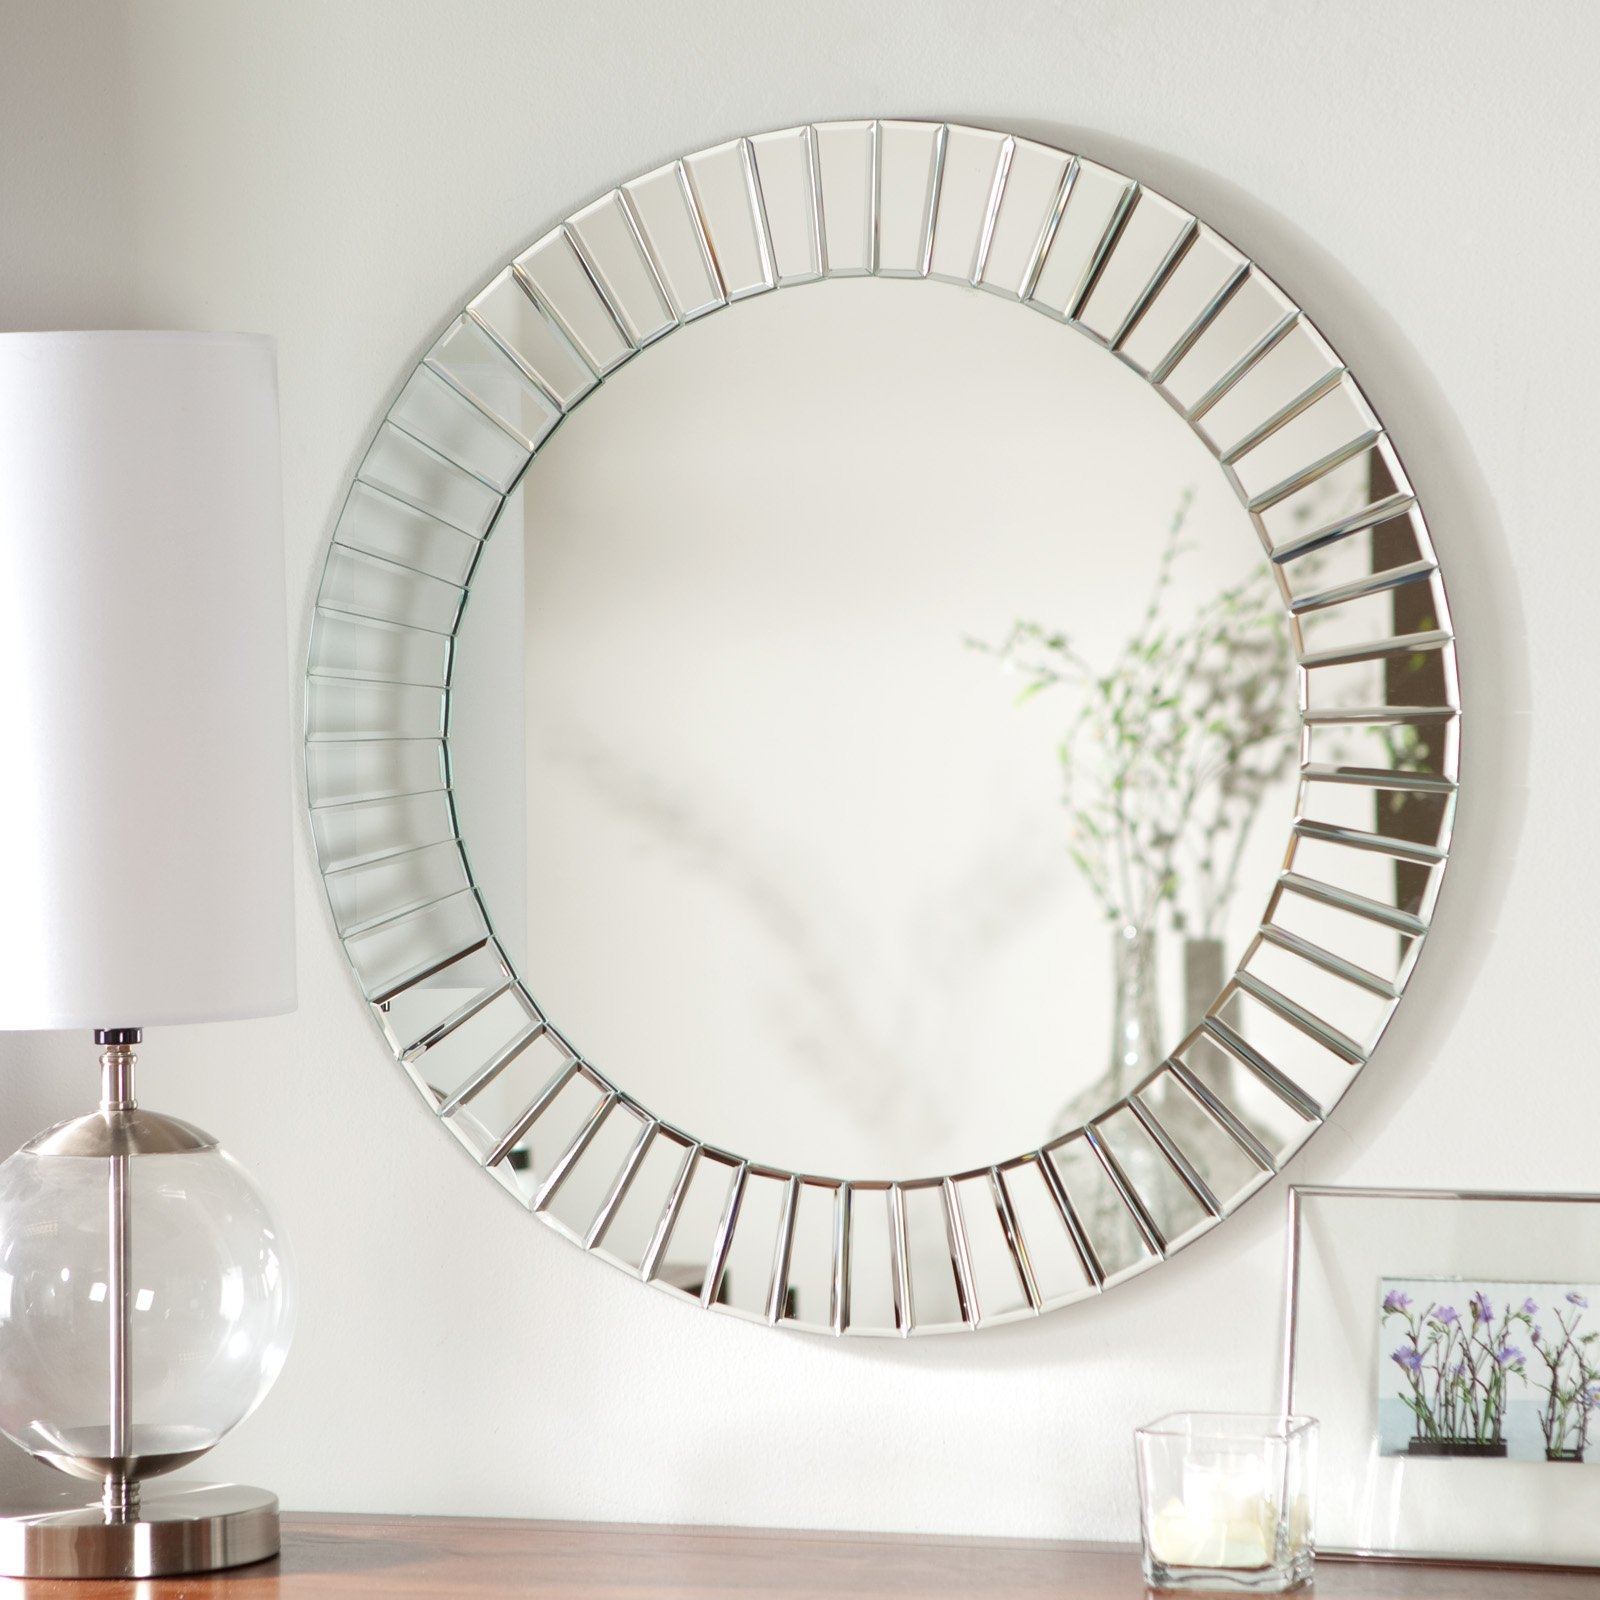 The Rich Frameless Mirrors Board Room Refresh Pertaining To Round Mirrors For Sale (Image 13 of 15)